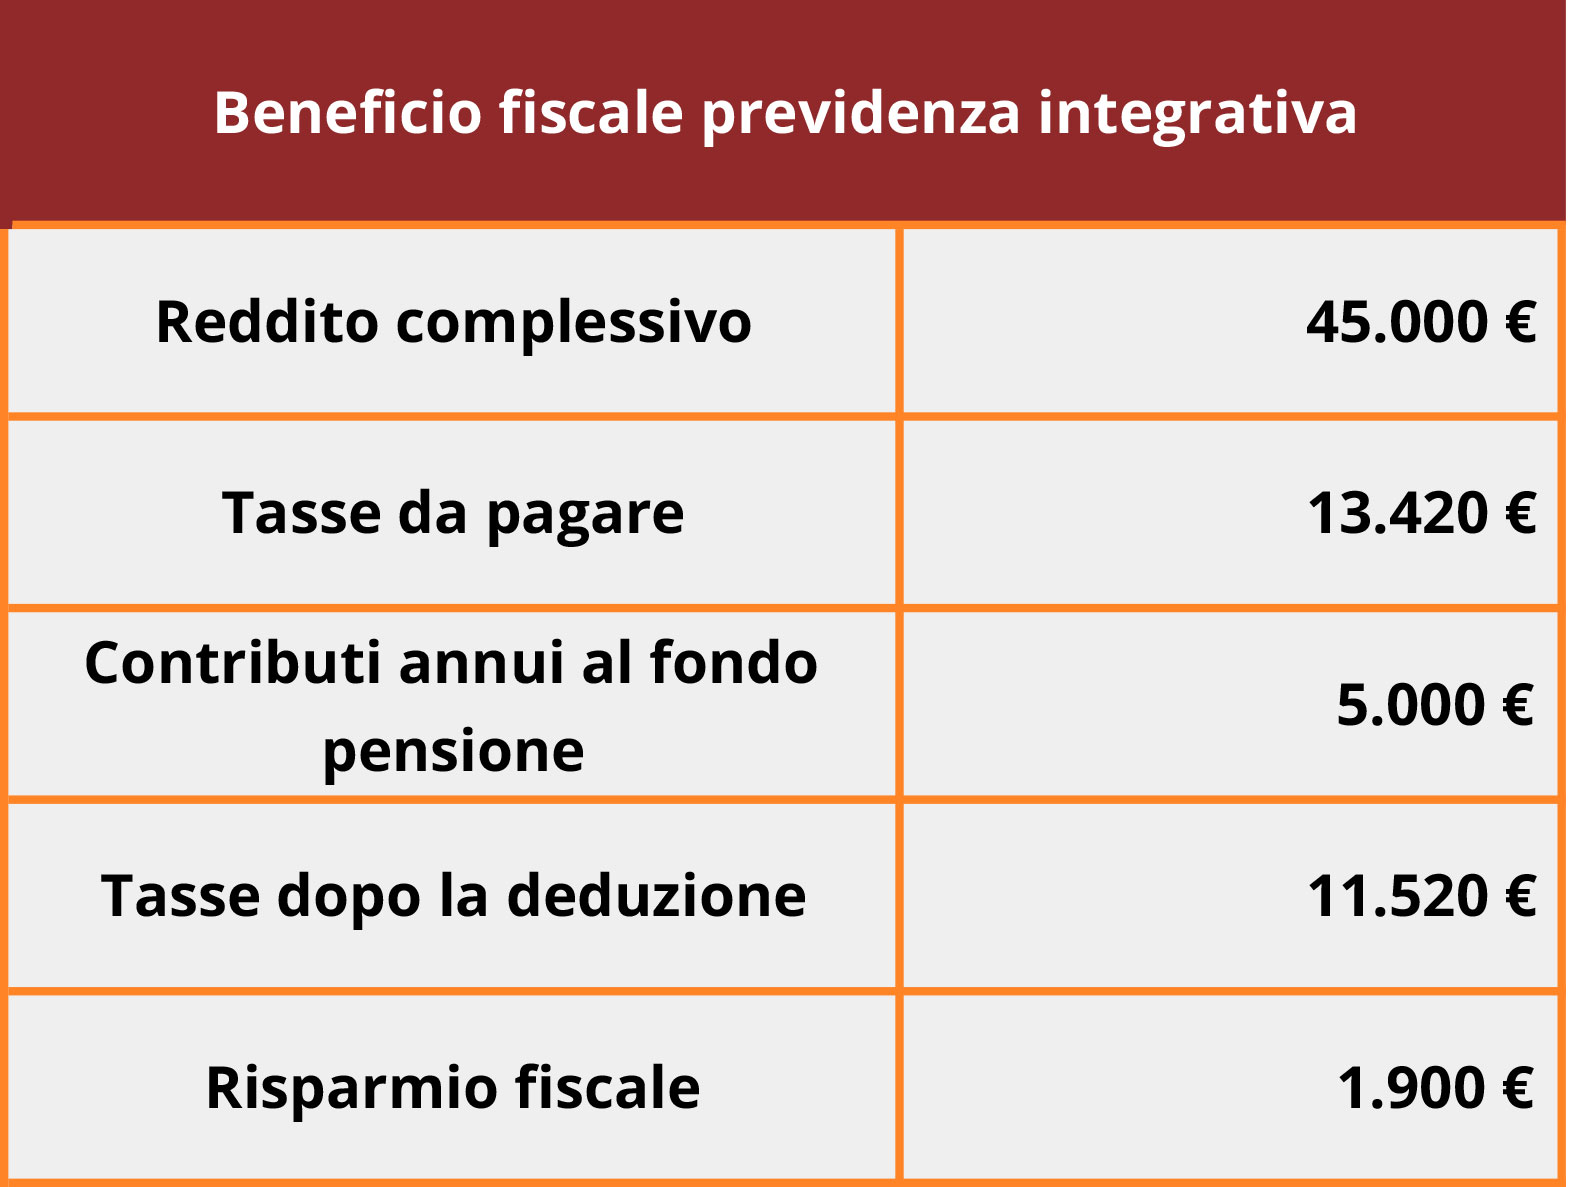 Beneficio_Fiscale_Franchising